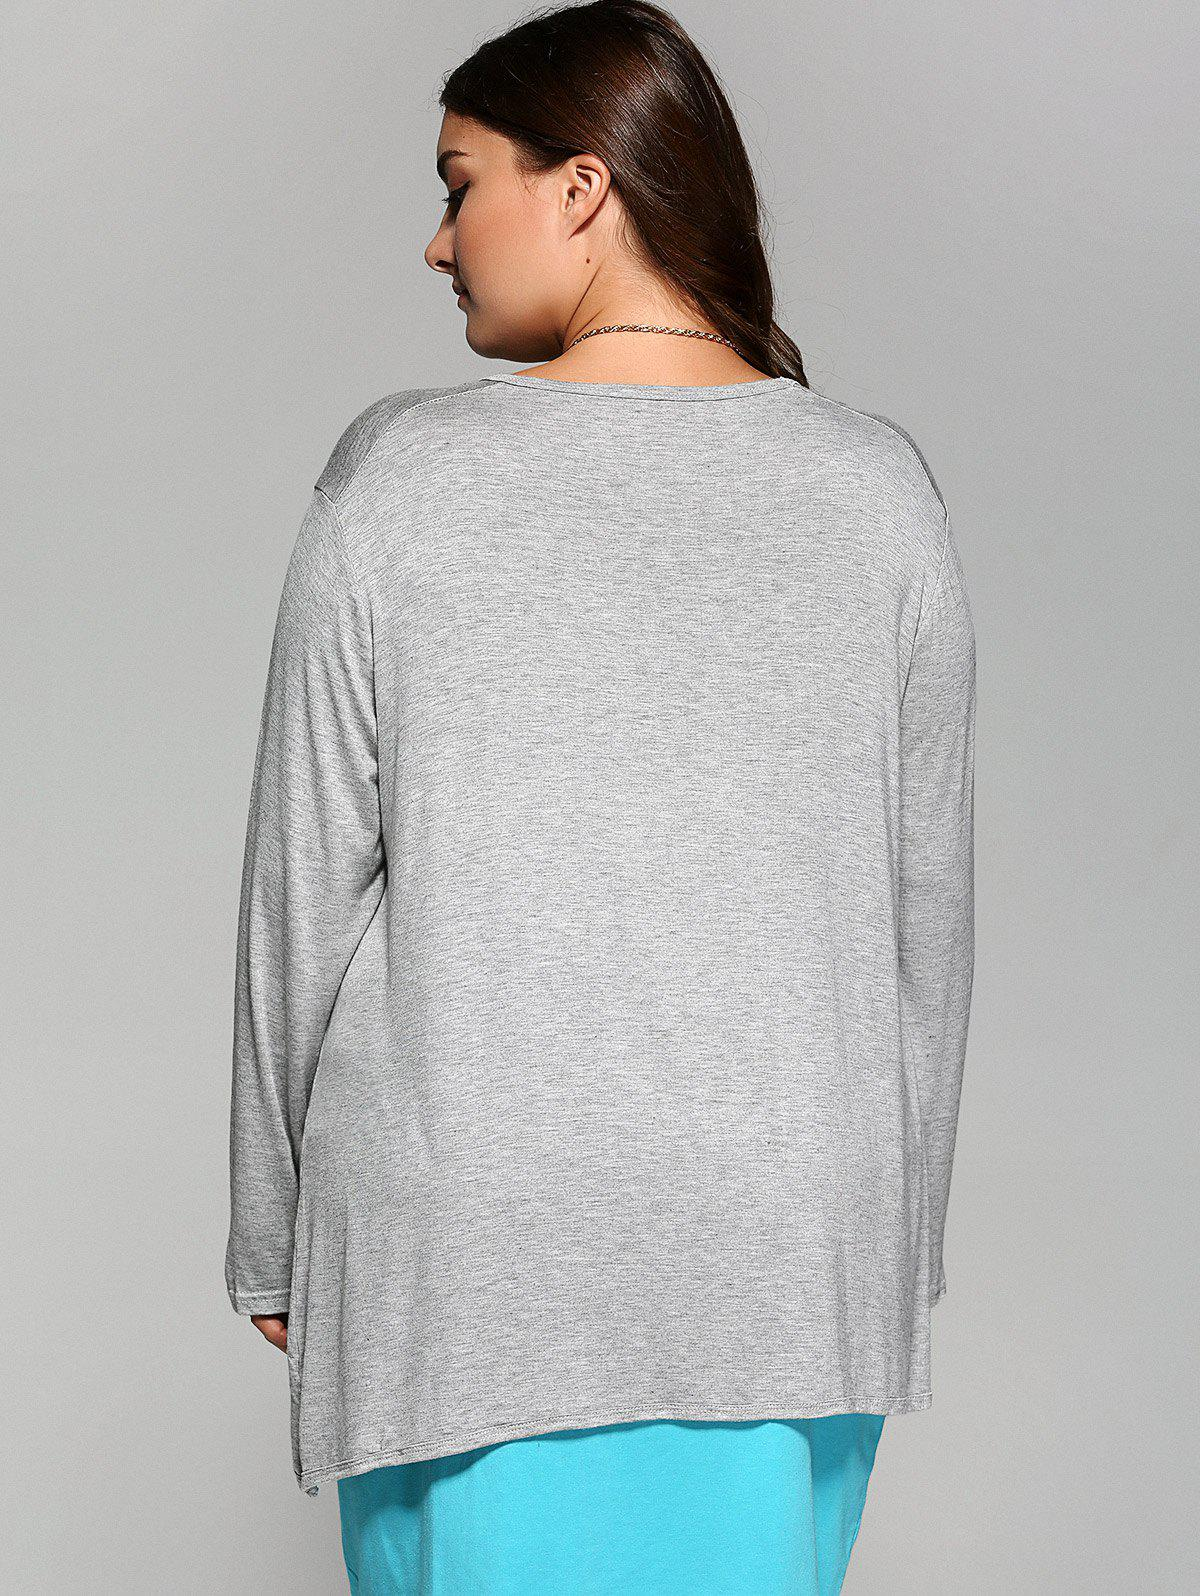 Vrac Asymmetric long T-shirt - Gris Clair 4XL